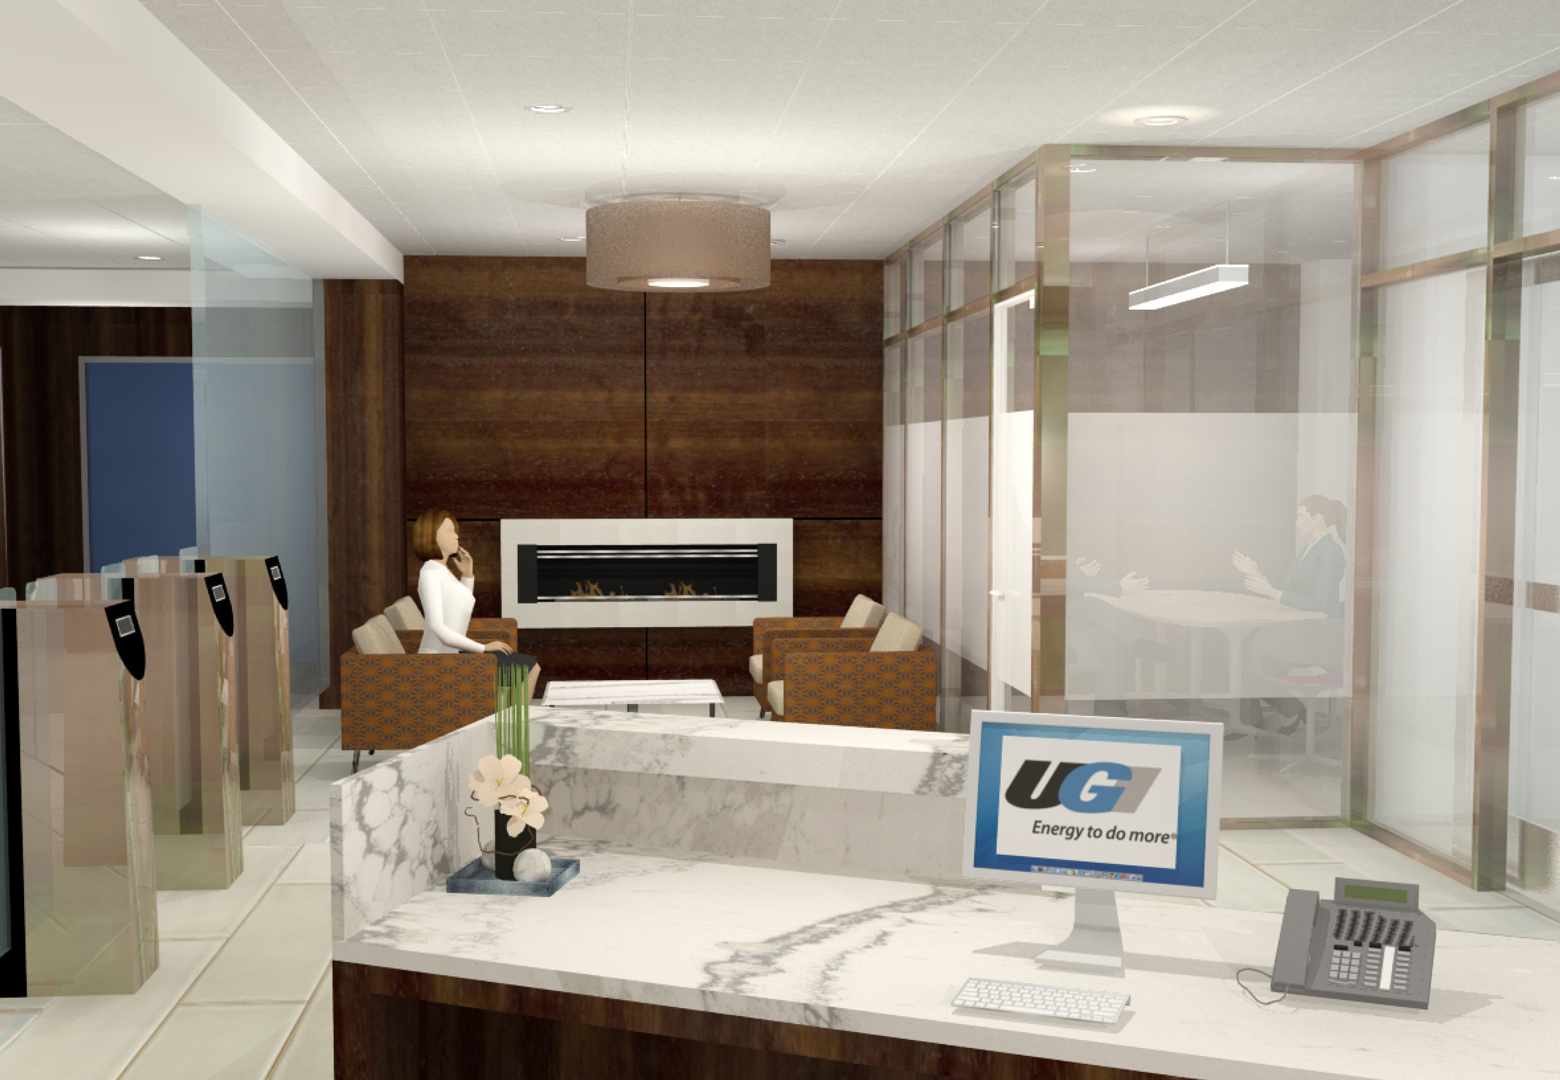 UGI-Interior-Renderings-4